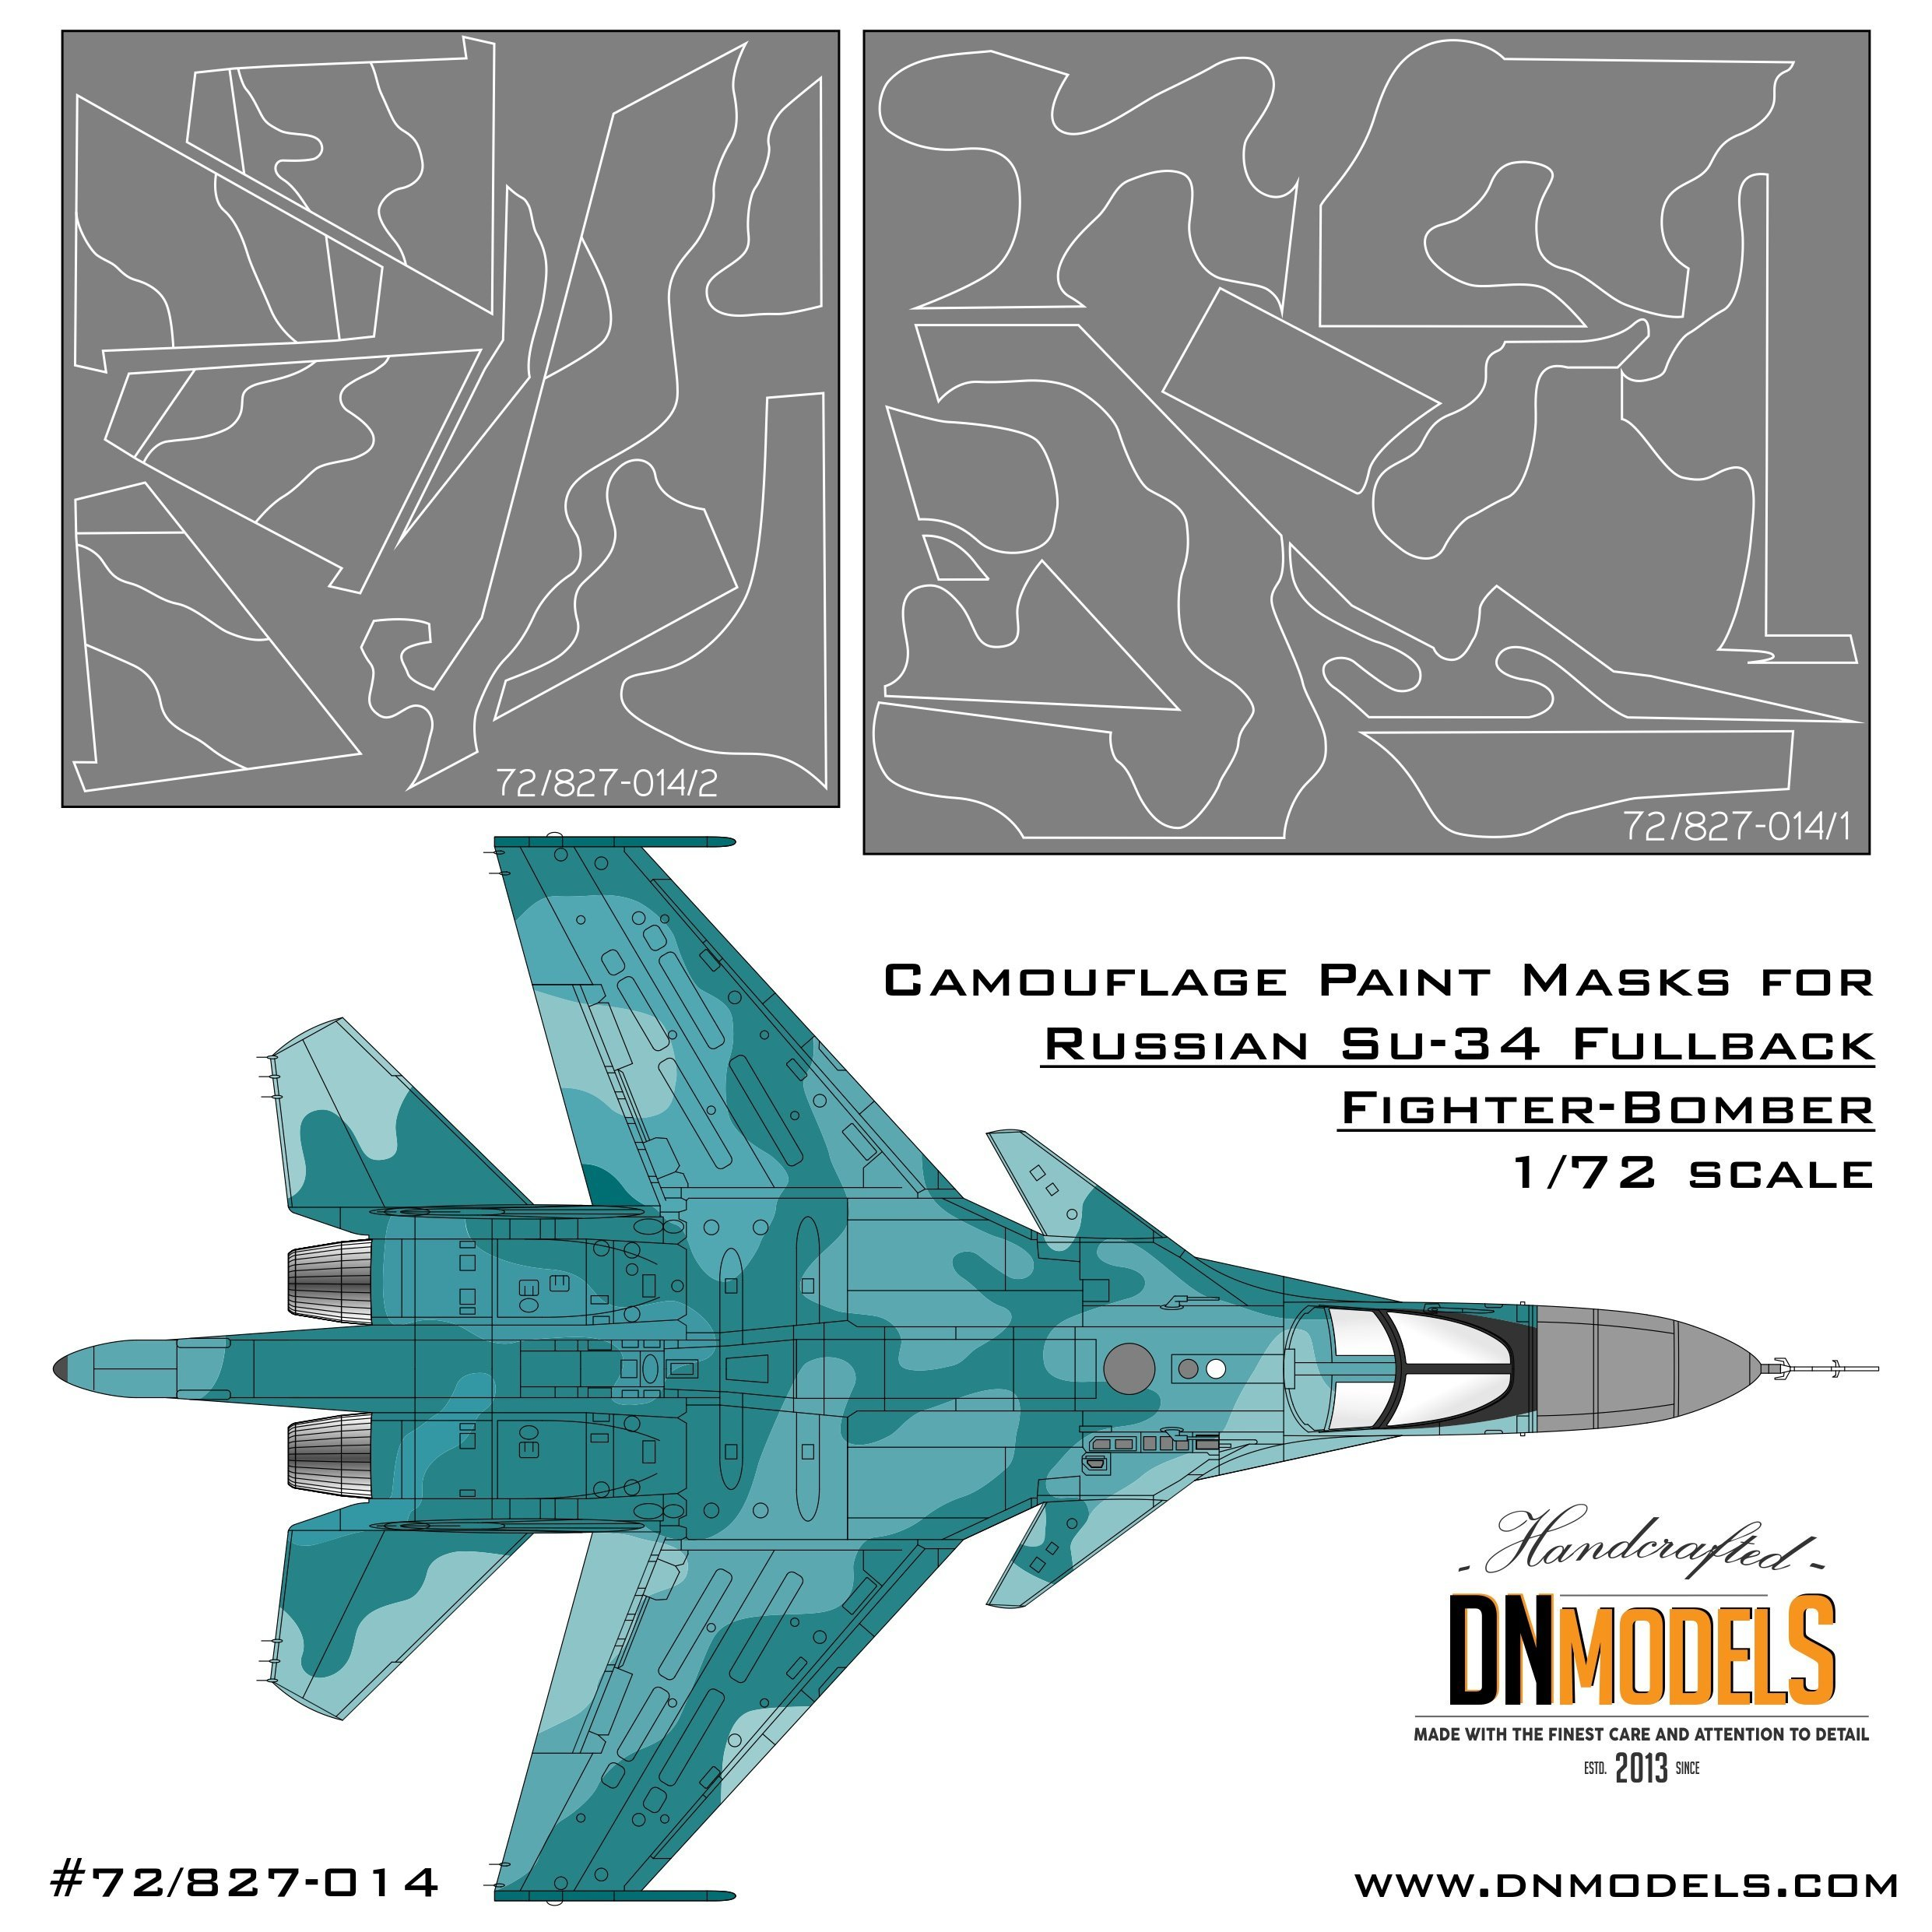 Camouflage paint masks dn models su-34 fullback fighter bomber sukhoi su-32 1/72 trumpeter